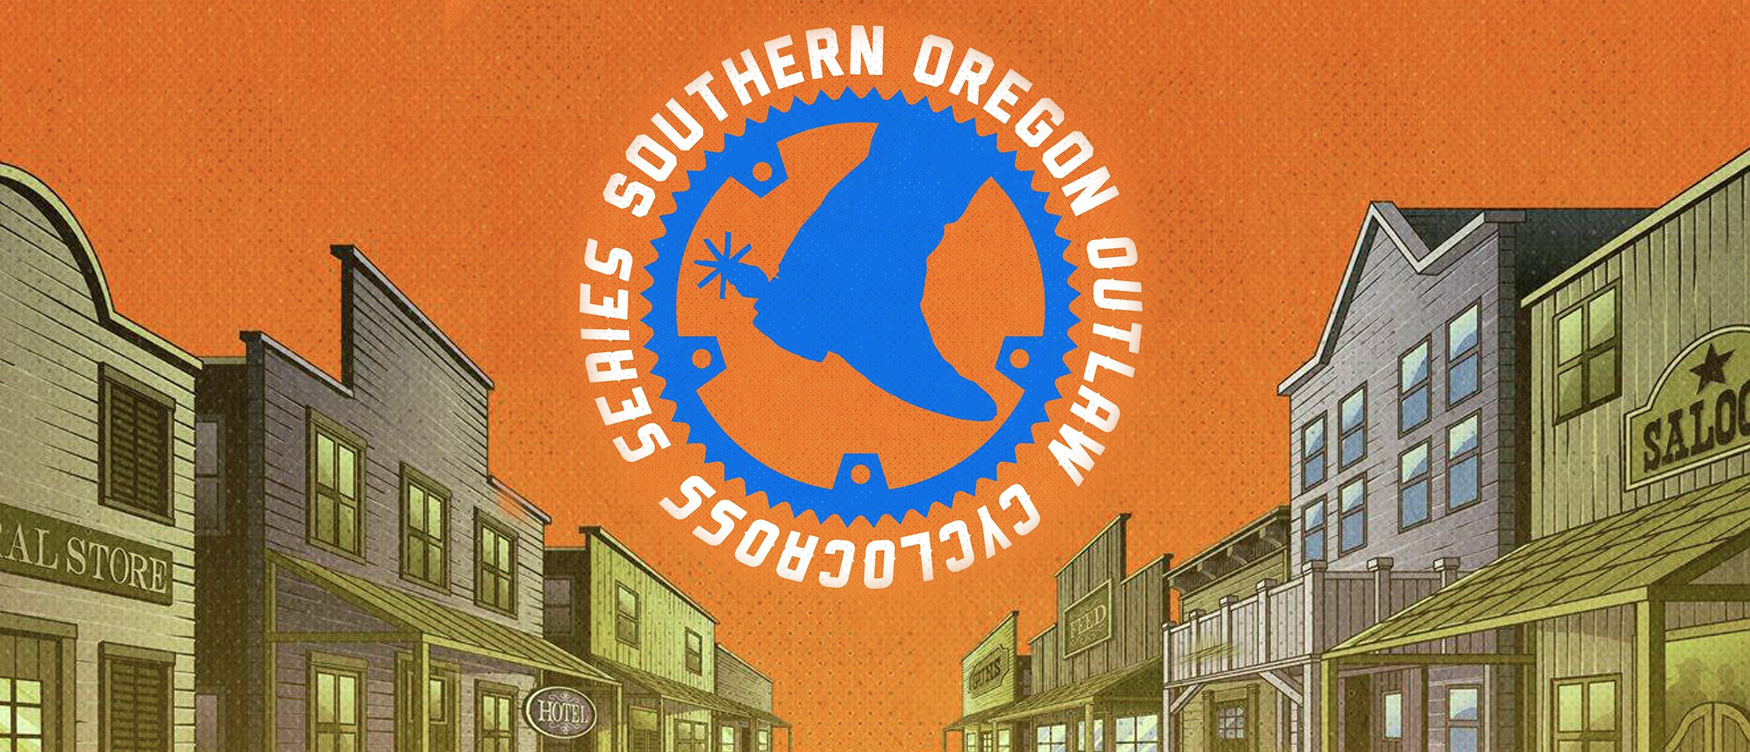 Southern Oregon Outlaw Cyclocross 2016 Banner